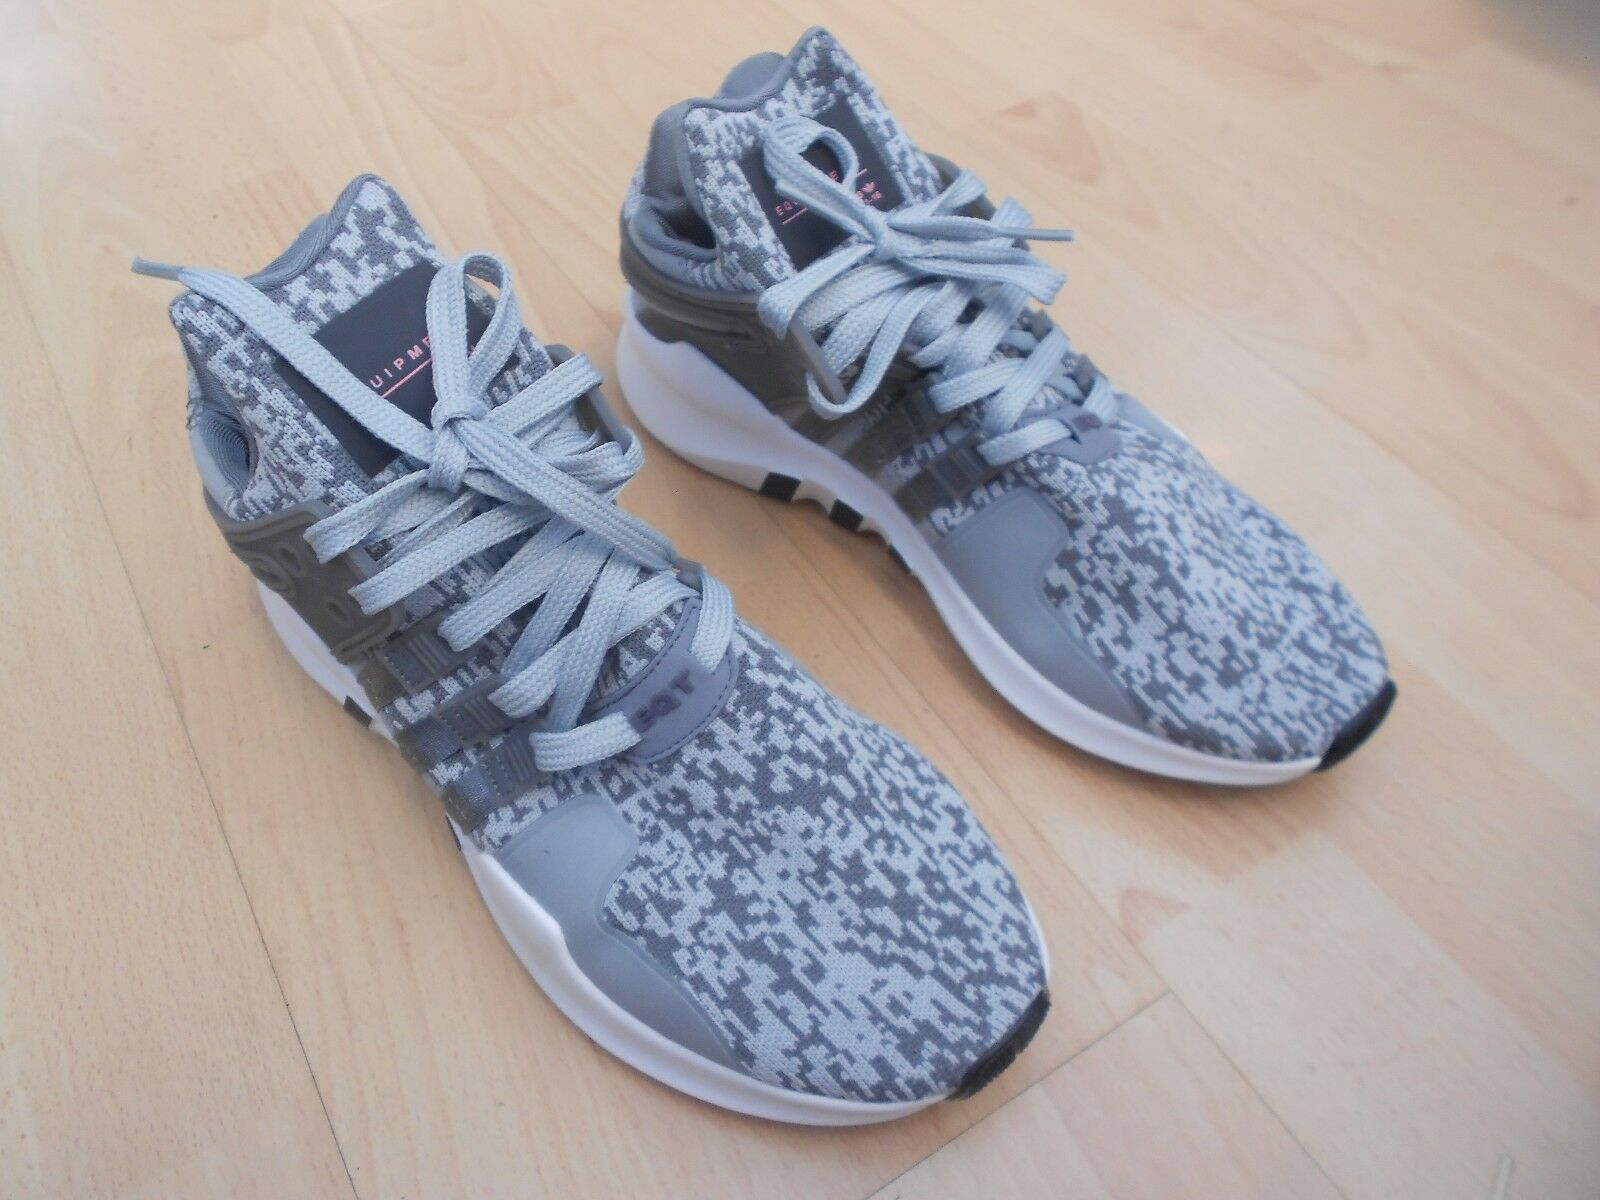 ADIDAS EQT SUPPORT 91-16 TRAINERS UK SIZE 9 - , IN  GOOD CONDITION , HARDLY WORN